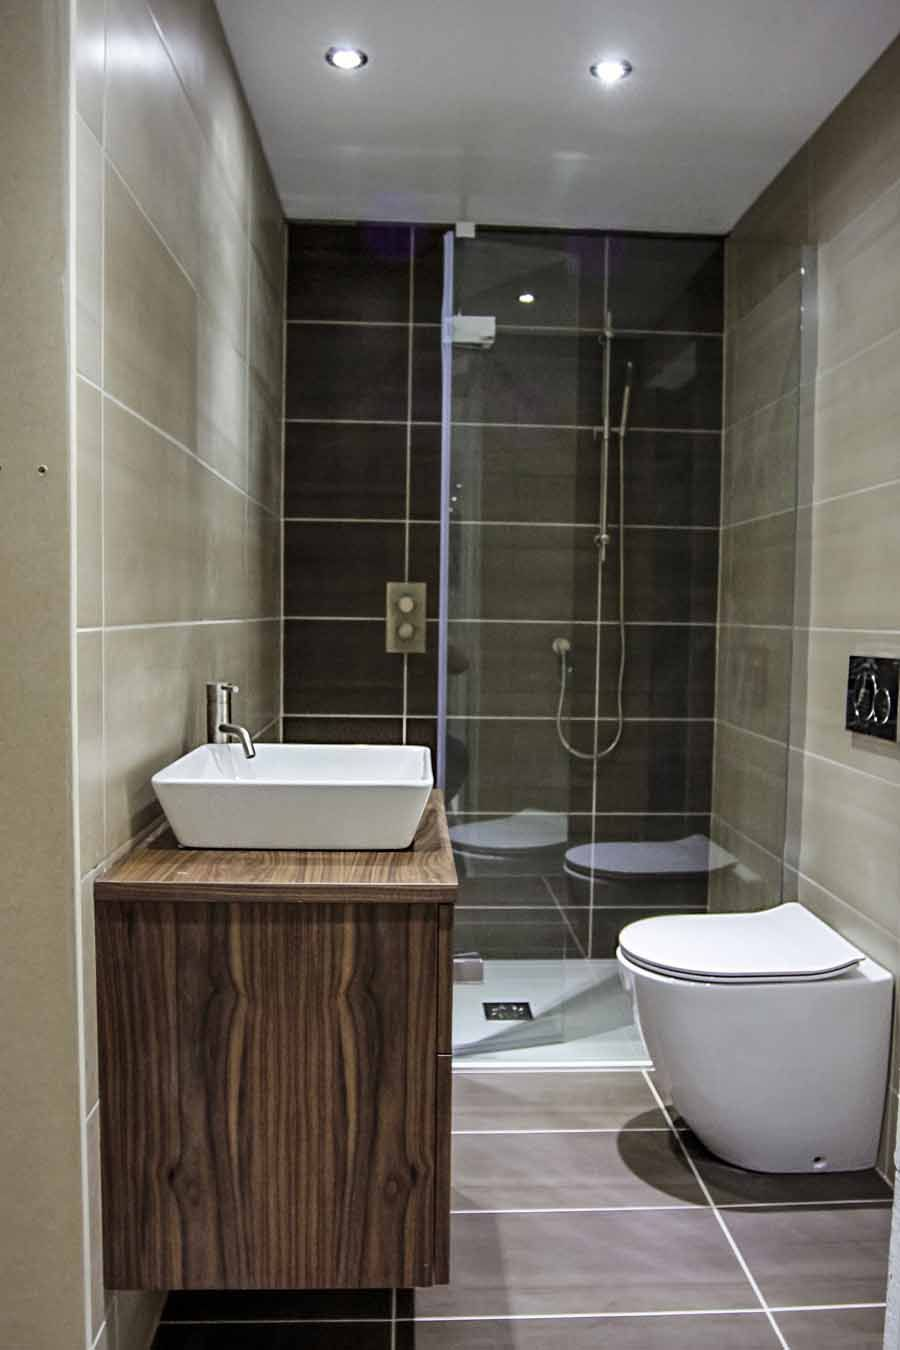 Choosing the most practical and attractive bathroom